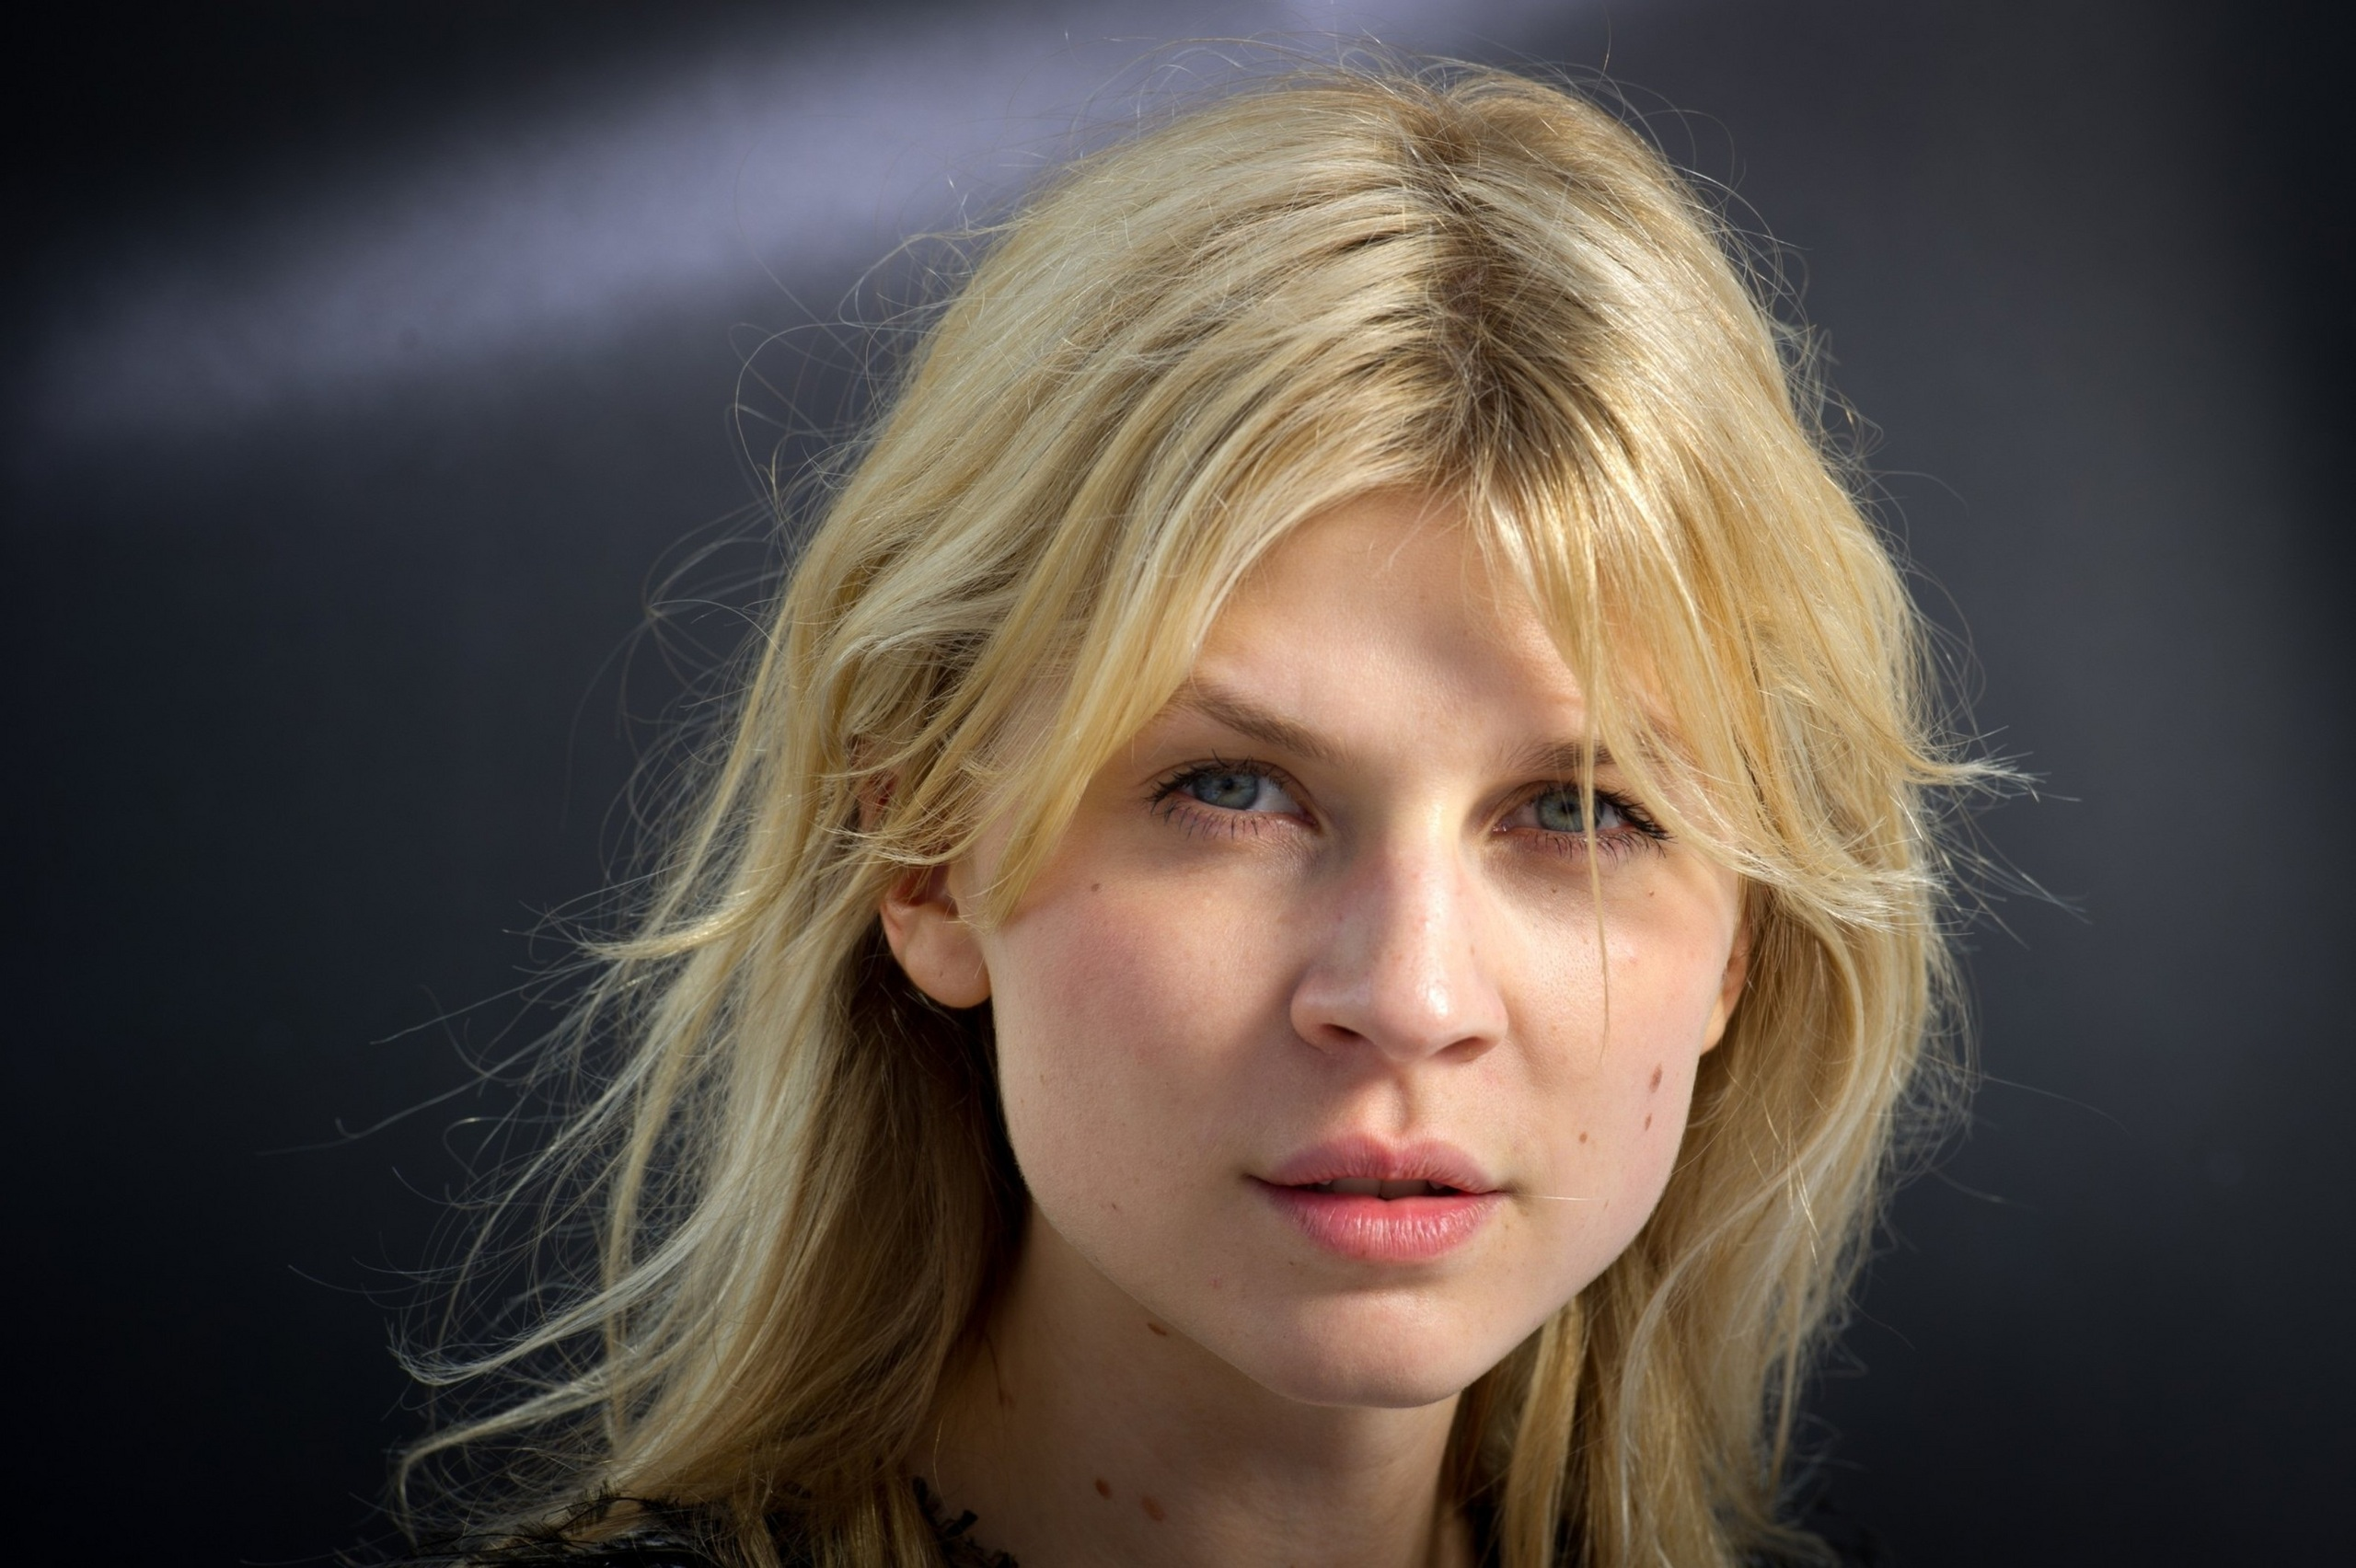 2560x1704 - Clemence Poesy Wallpapers 15